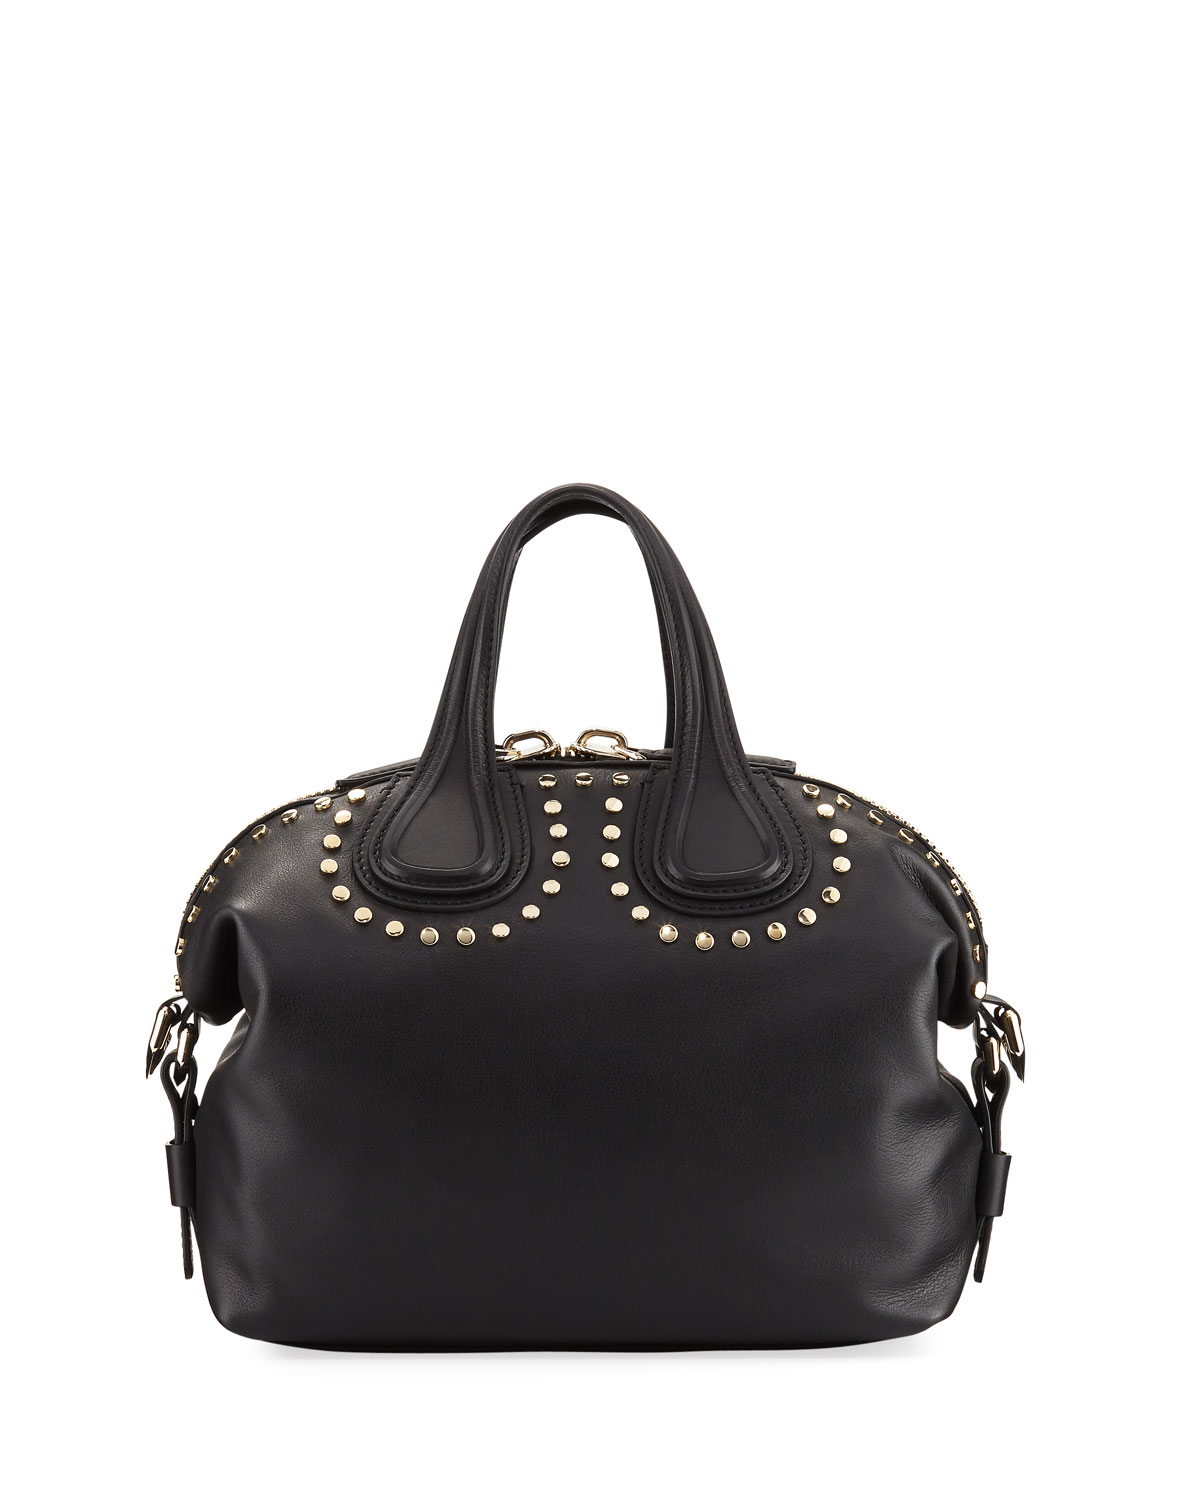 ff13d3995aa0 Givenchy Nightingale Small Studded Satchel Bag